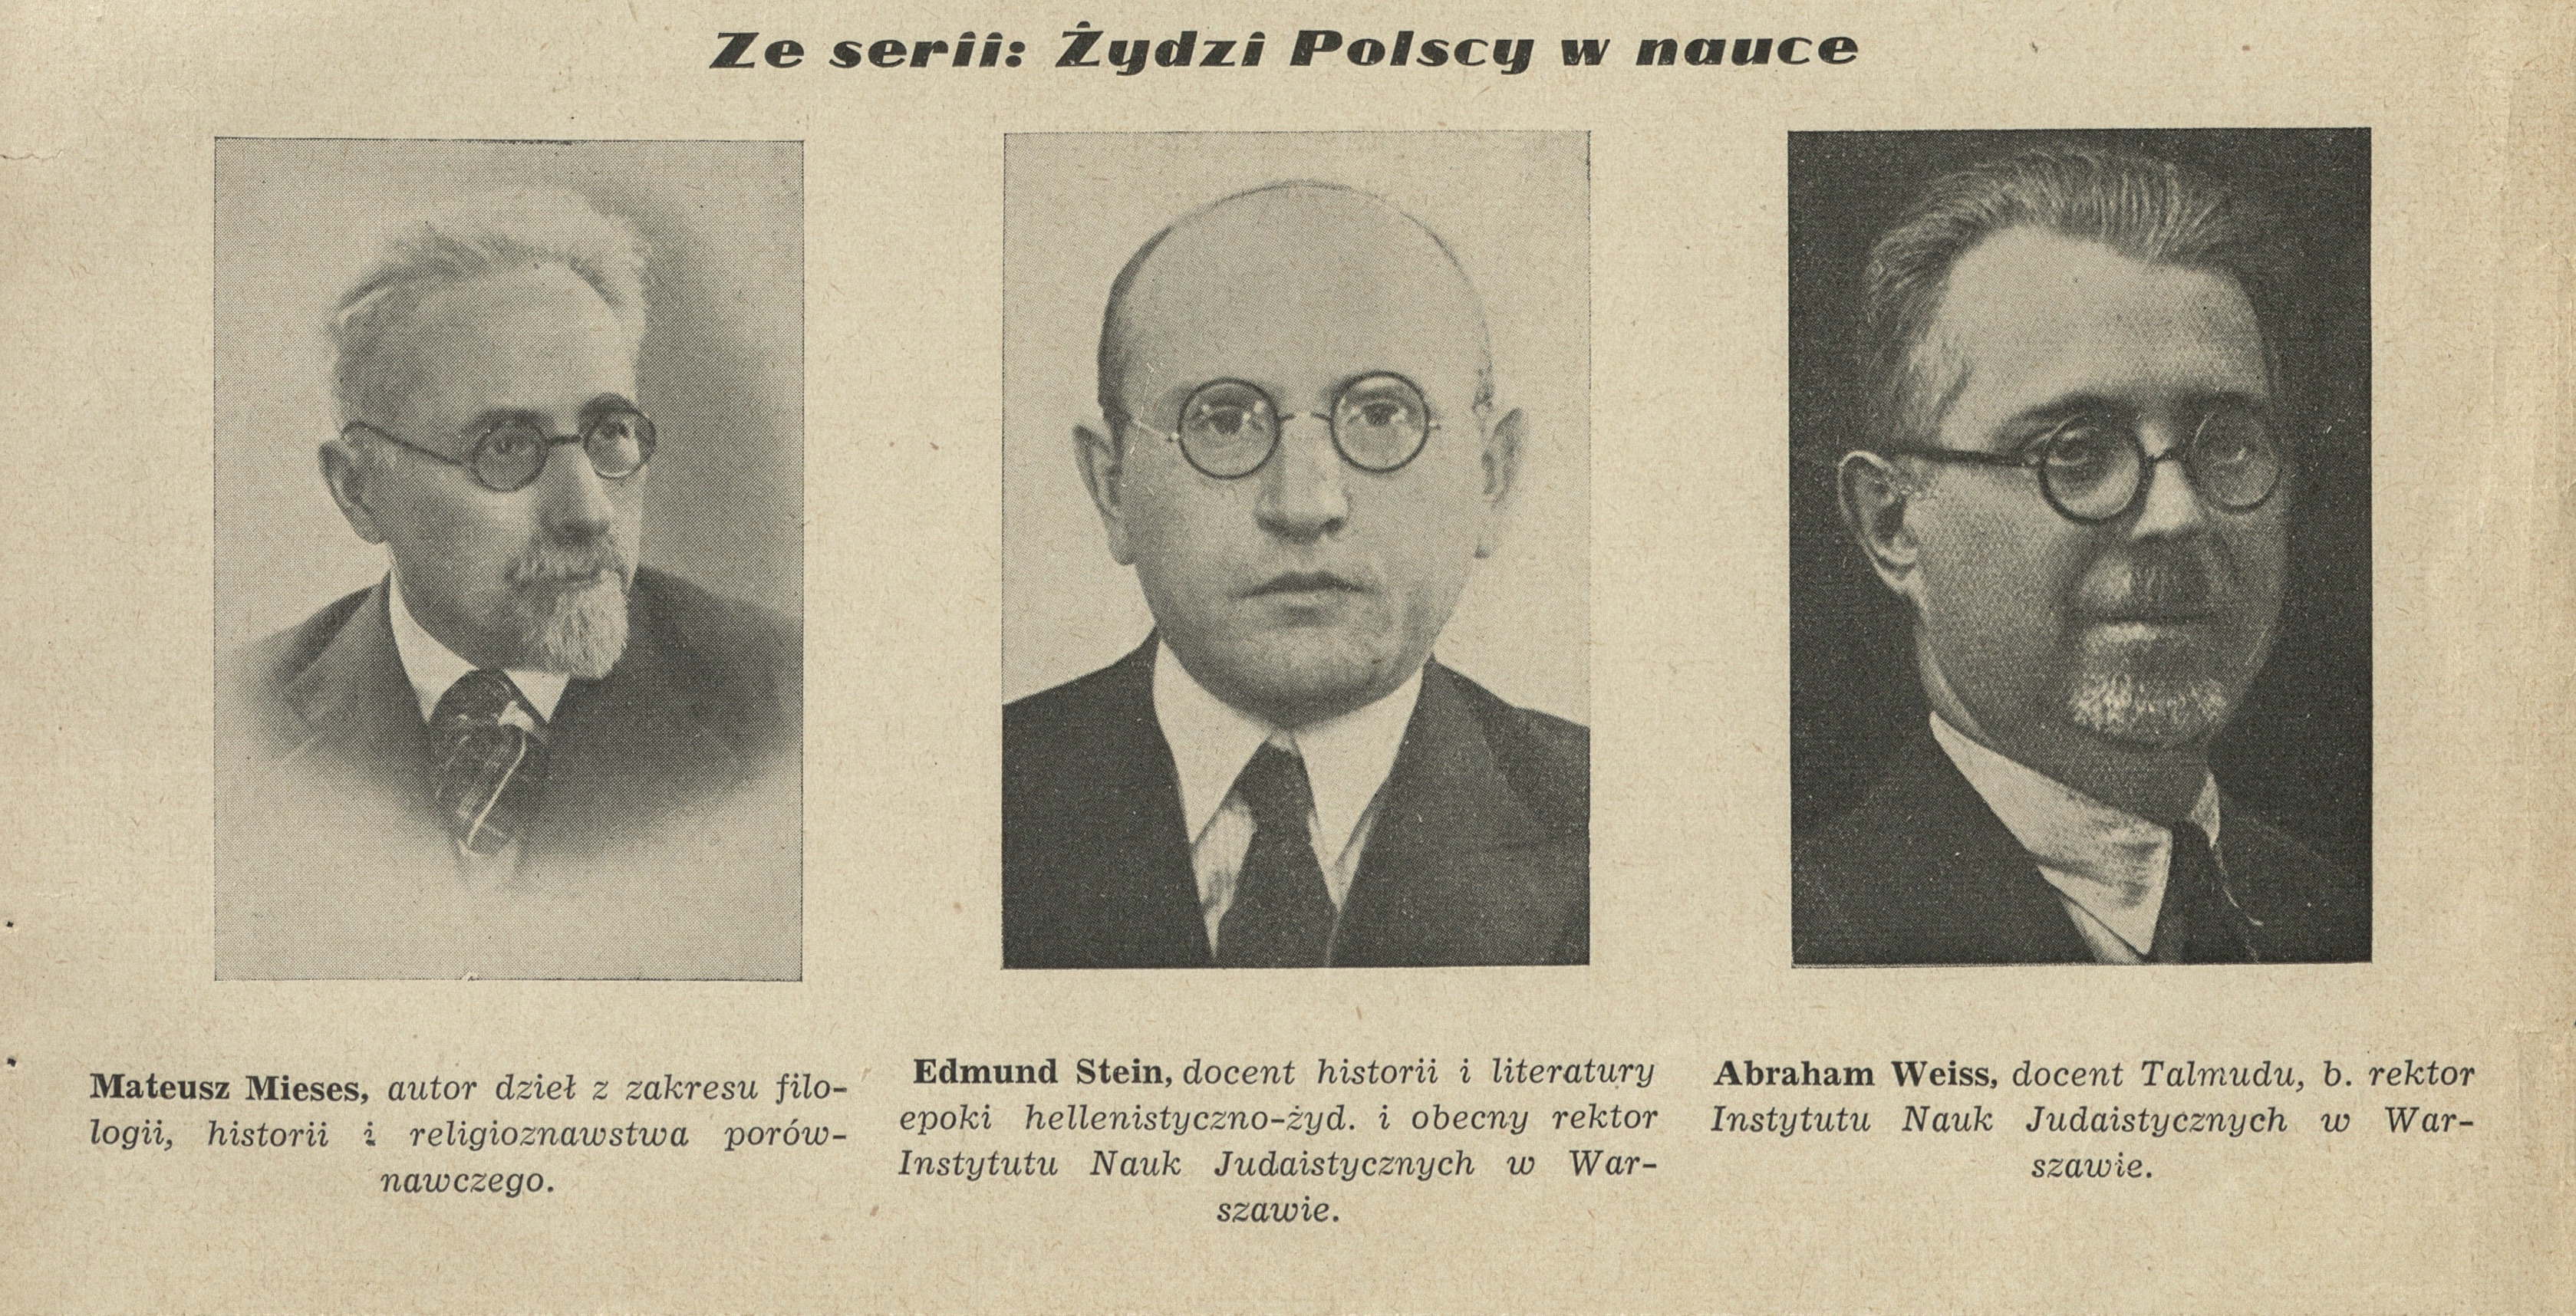 Edmund Stein (center). Image courtesy of the University of Warsaw Library.